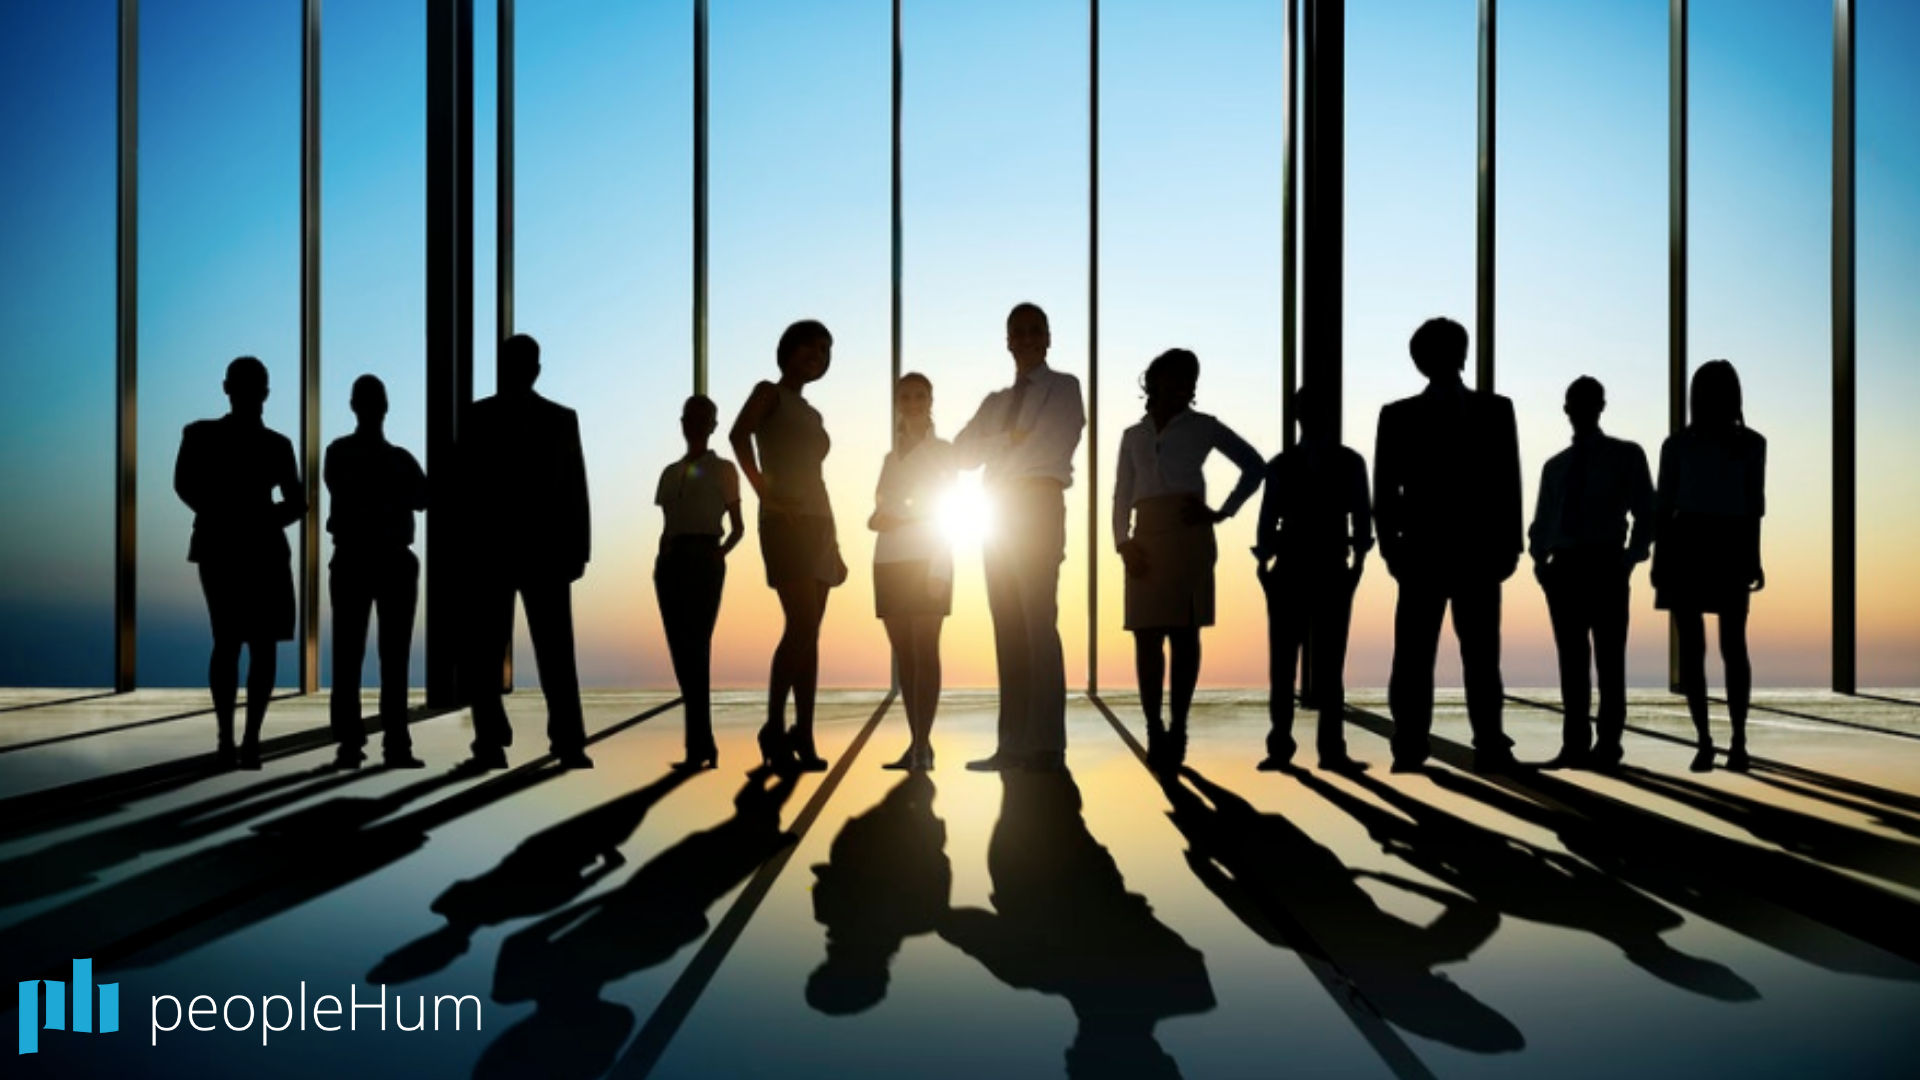 18 attributes of an ideal boss | peopleHum